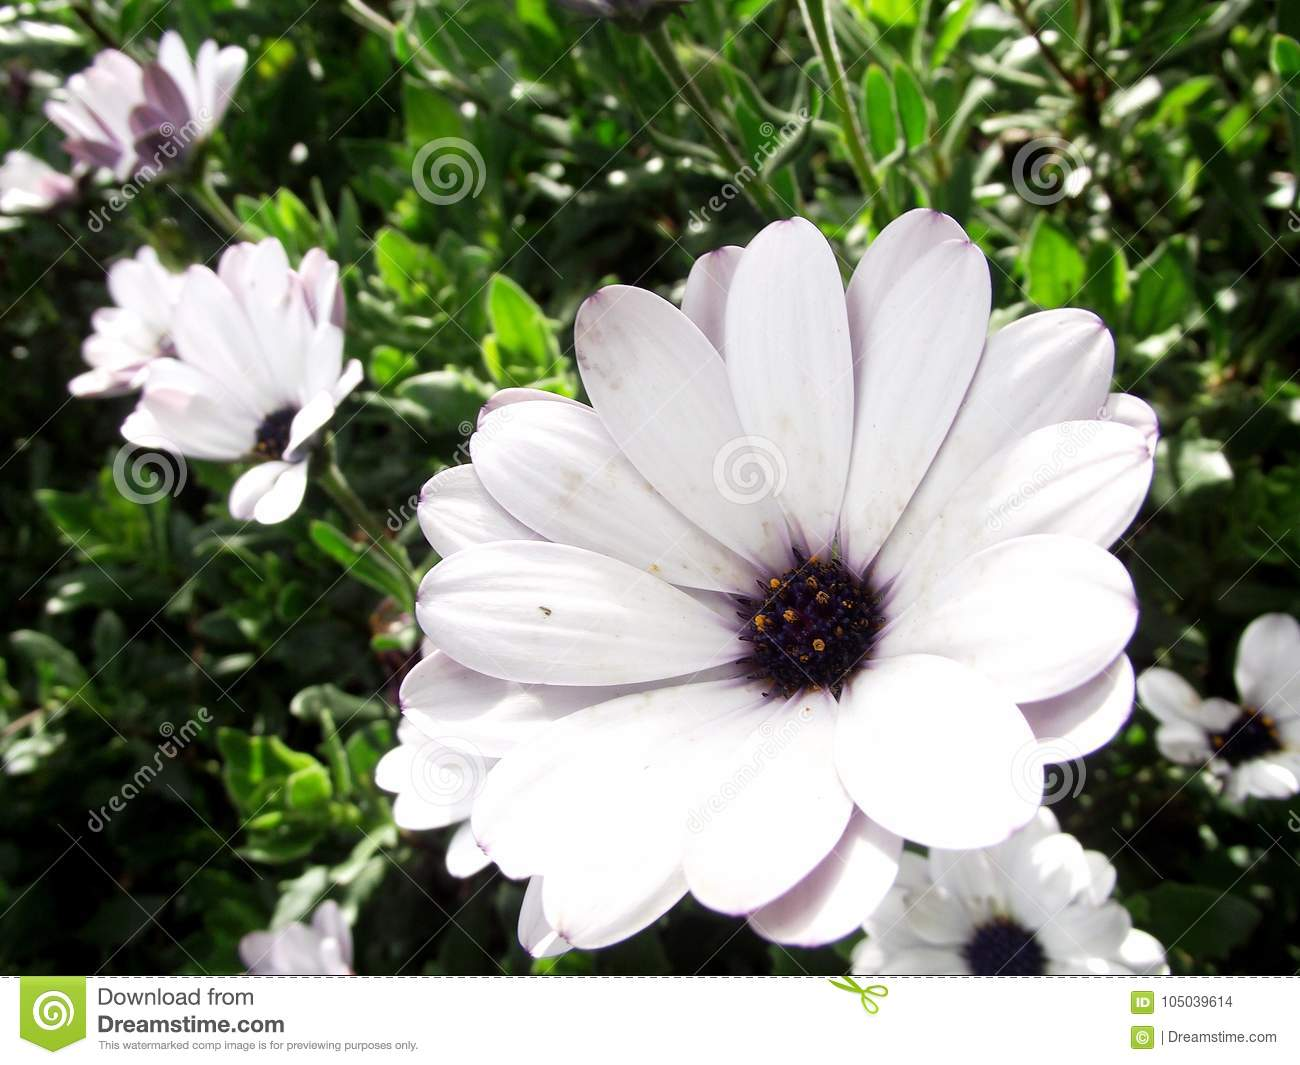 Unusual group of white flowers stock photo image of beautiful unusual group of white flowers izmirmasajfo